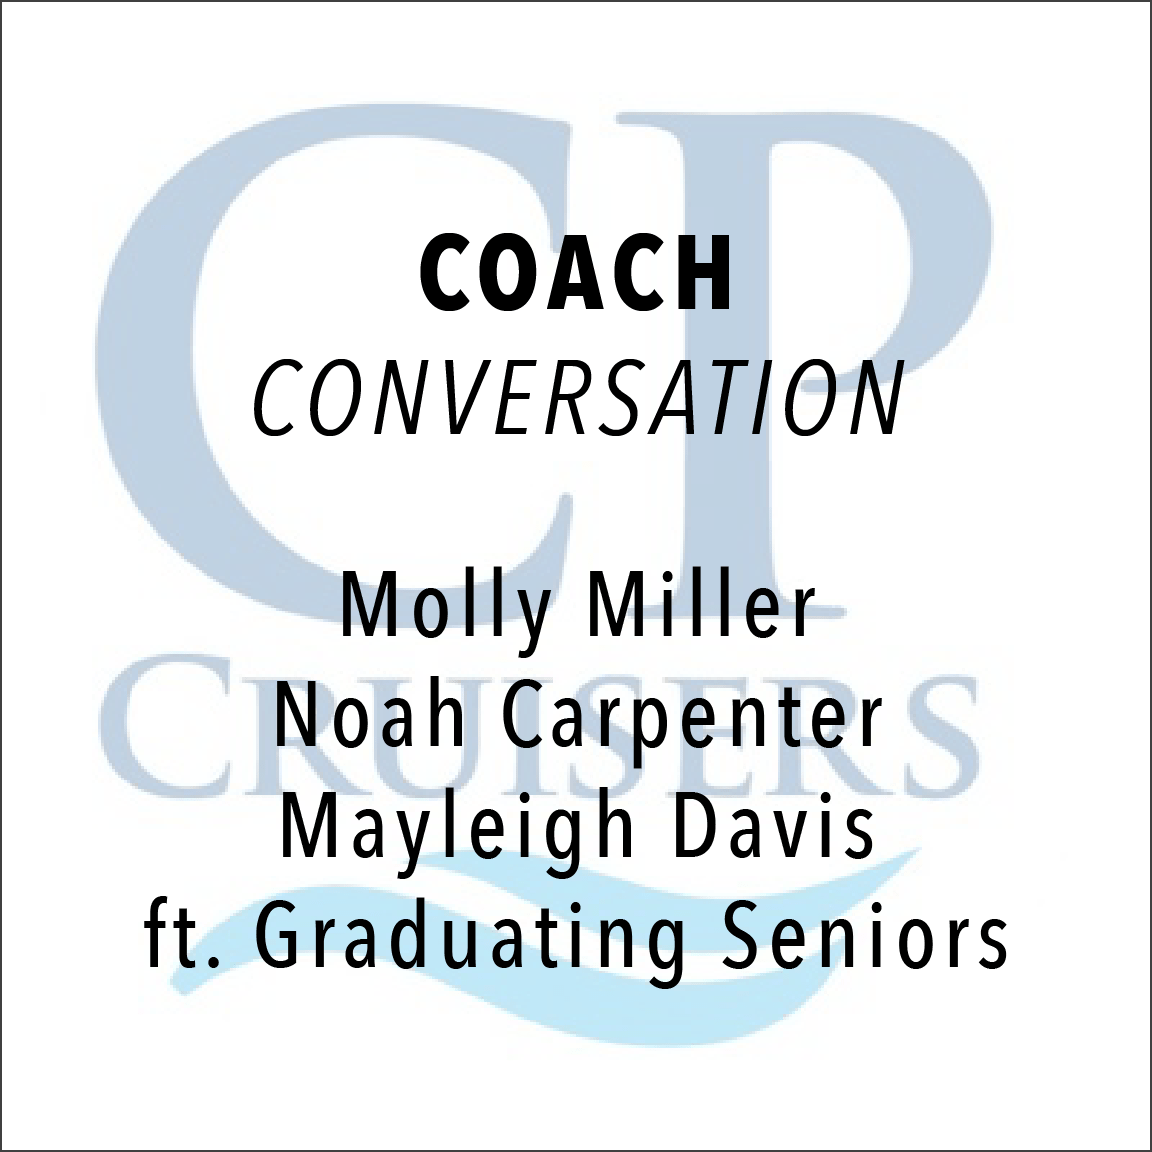 Conversation with the Crosspointe Head Coaches: Molly Miller, Noah Carpenter, and Mayleigh Davis, featuring the graduating seniors